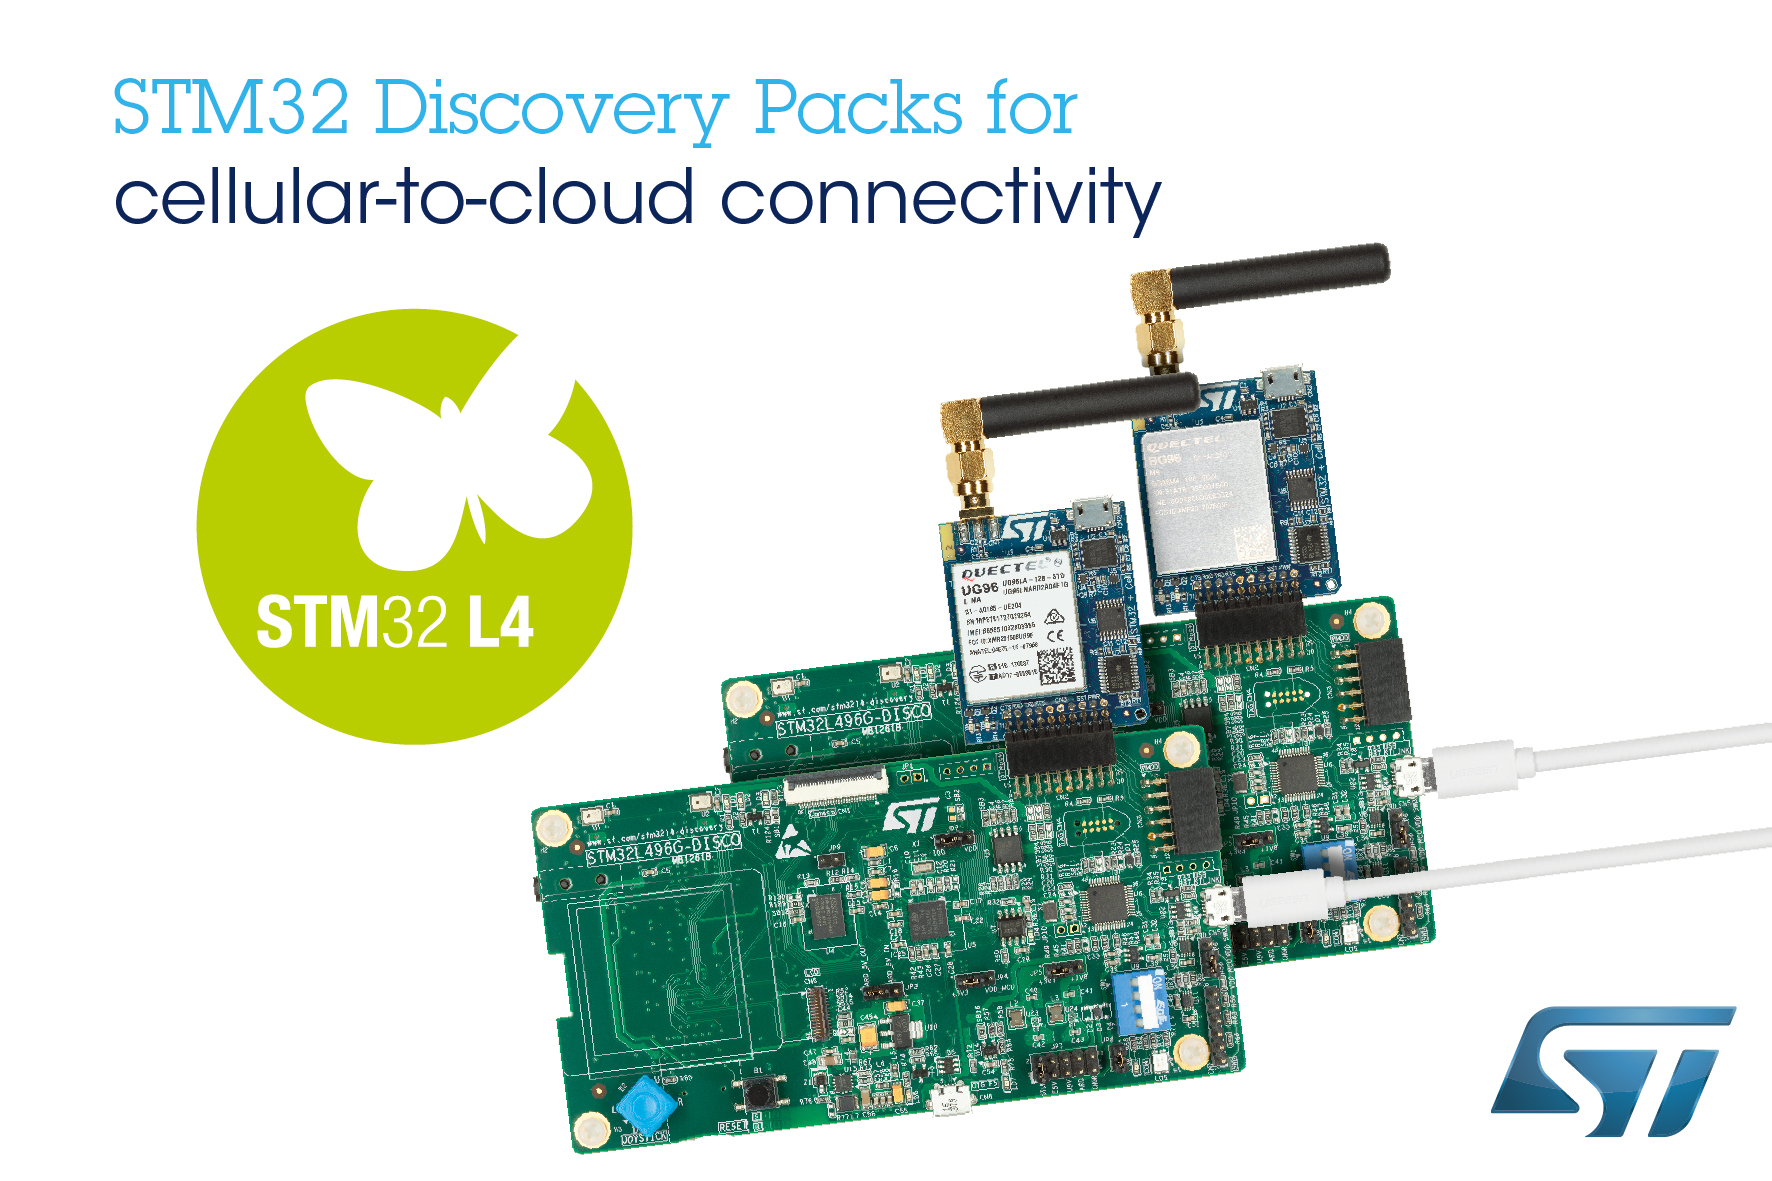 New STM32 Discovery Packs from STMicroelectronics Simplify Cellular